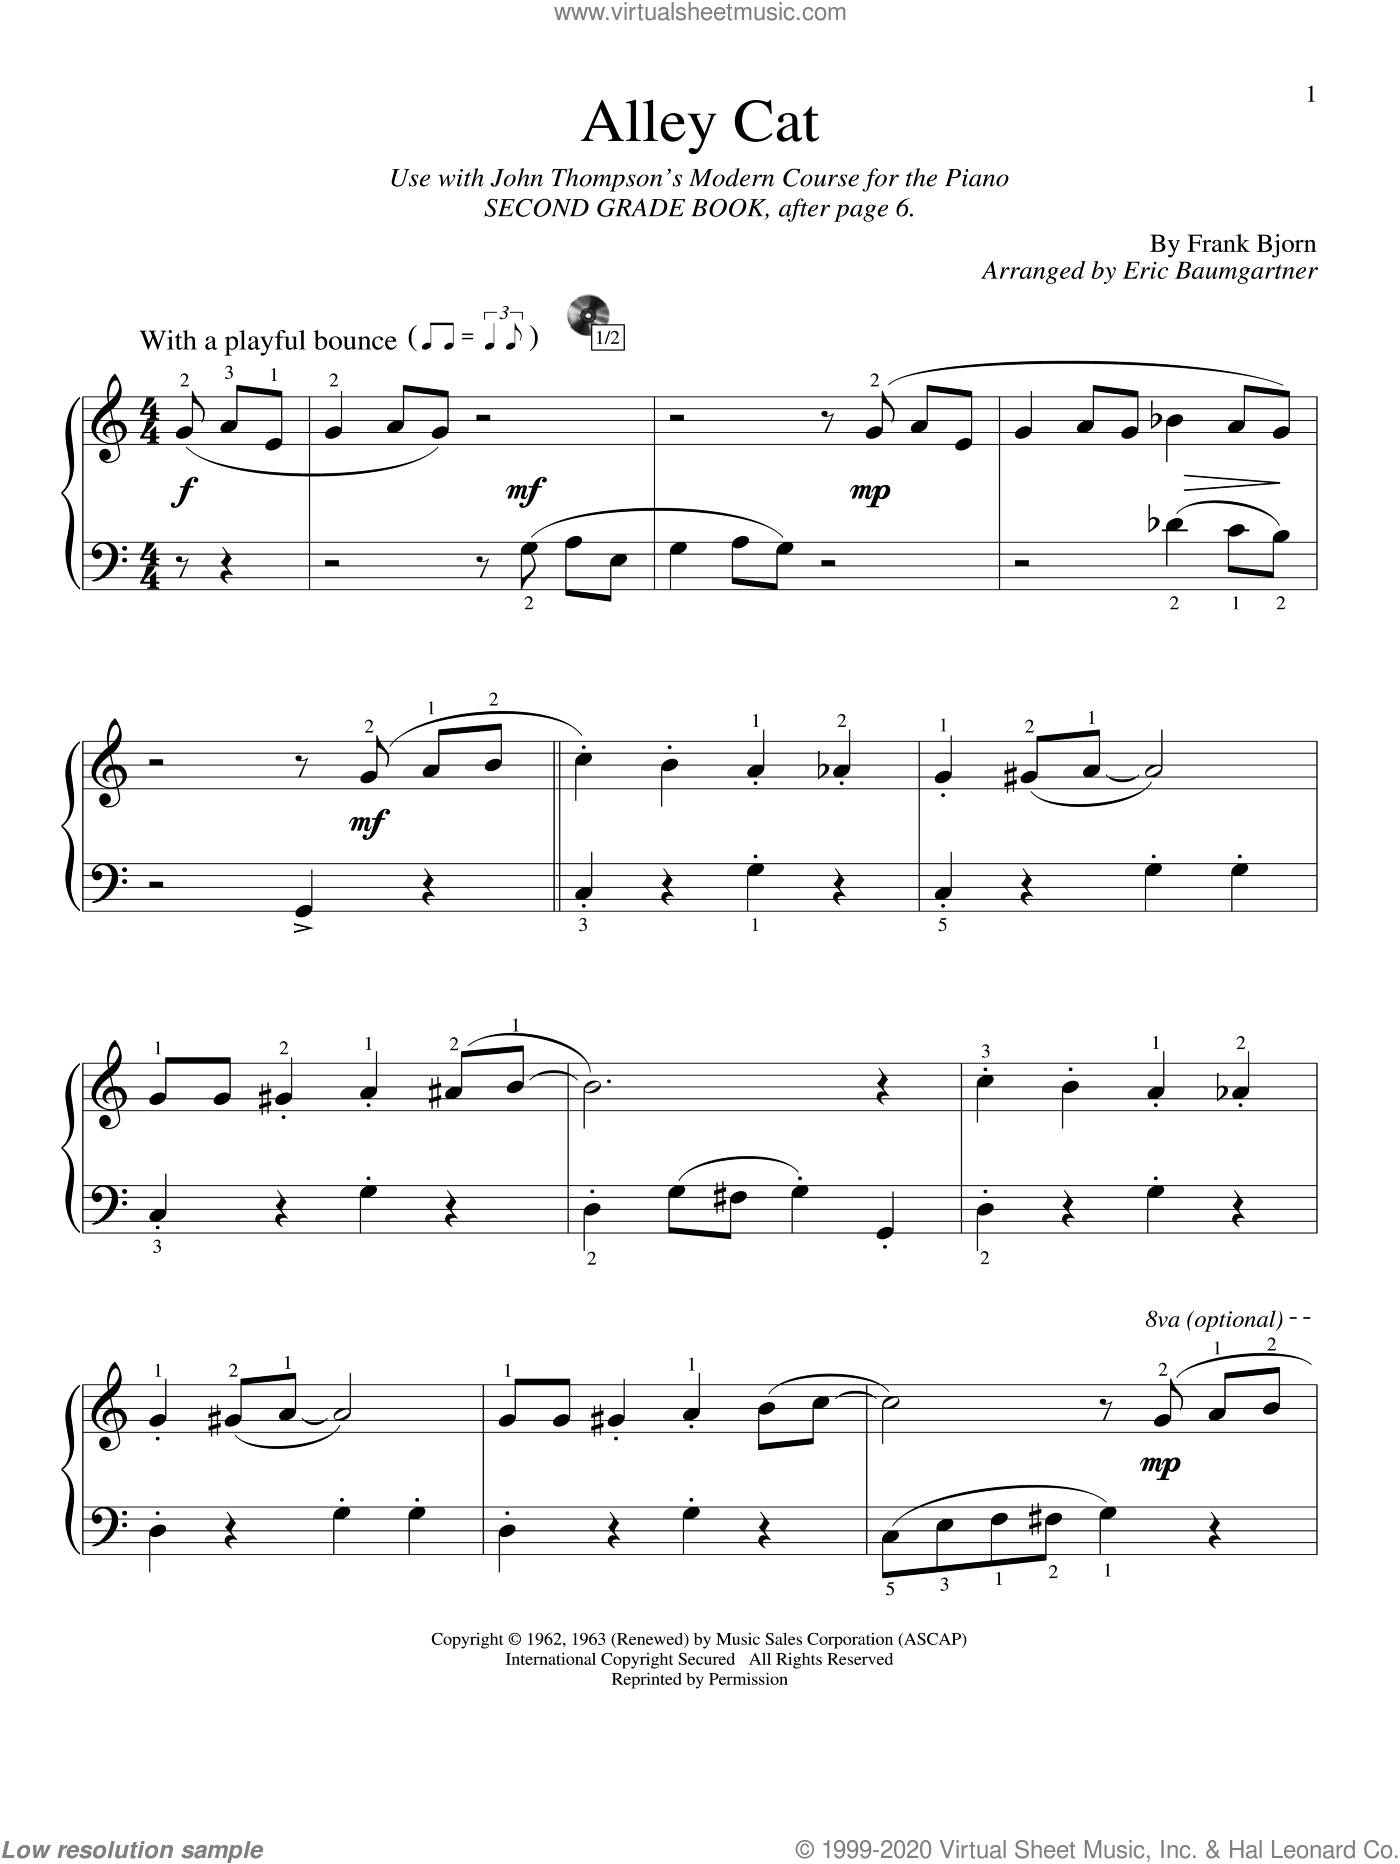 Alley Cat sheet music for piano solo (elementary) by Frank Bjorn and Eric Baumgartner